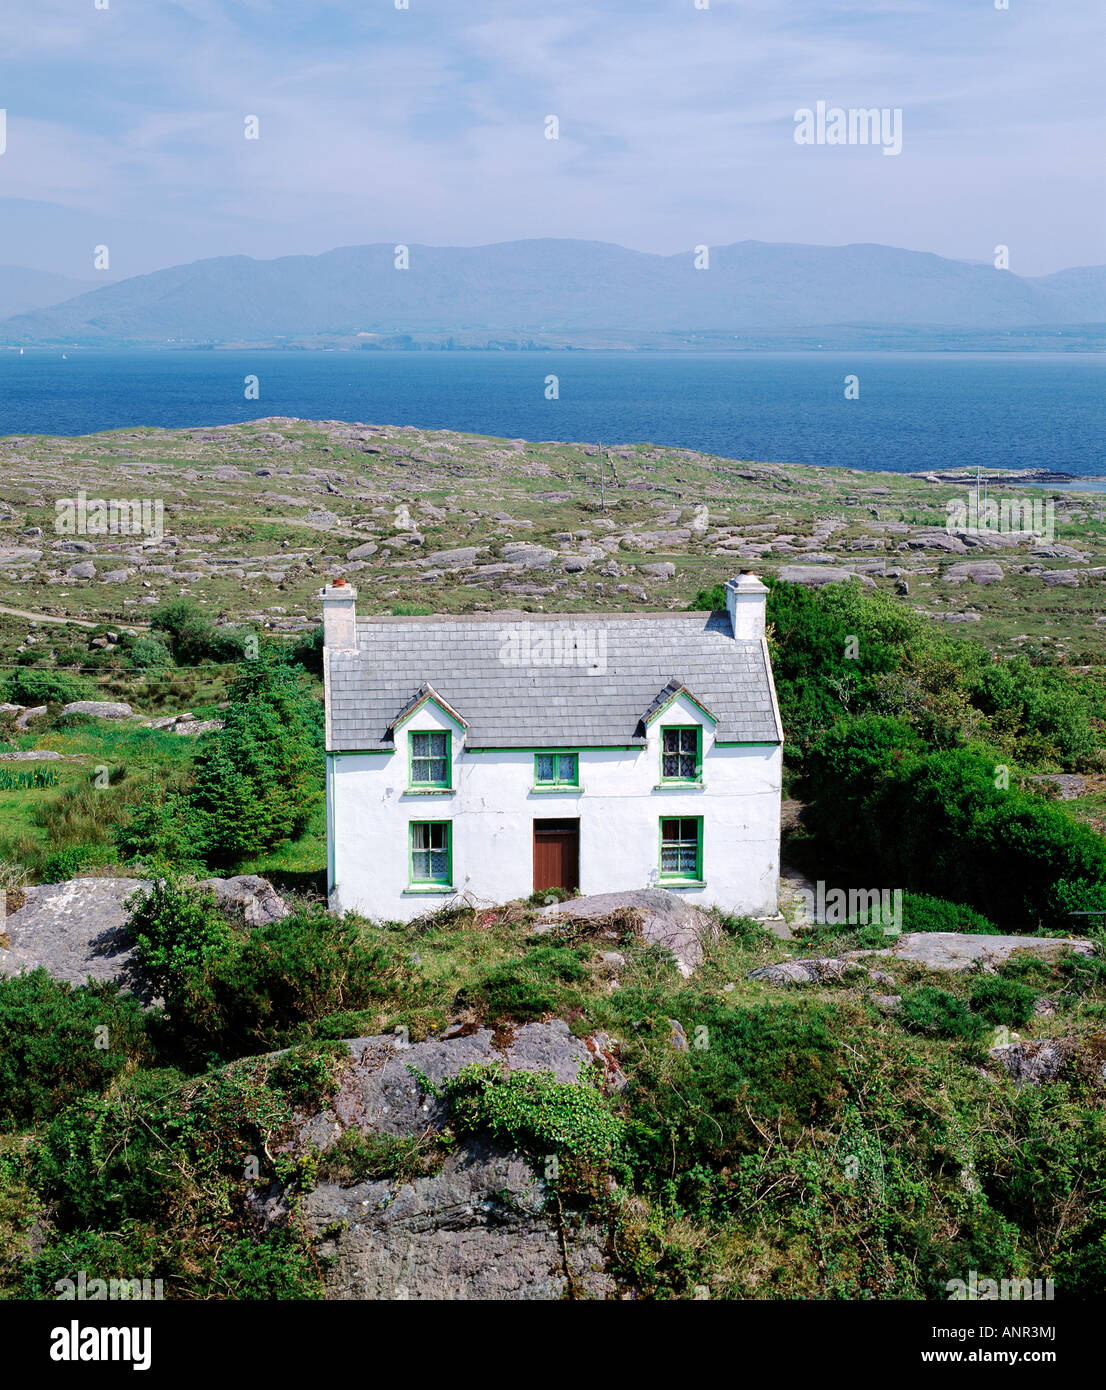 Ireland County Kerry Iveragh Peninsula Two Story House